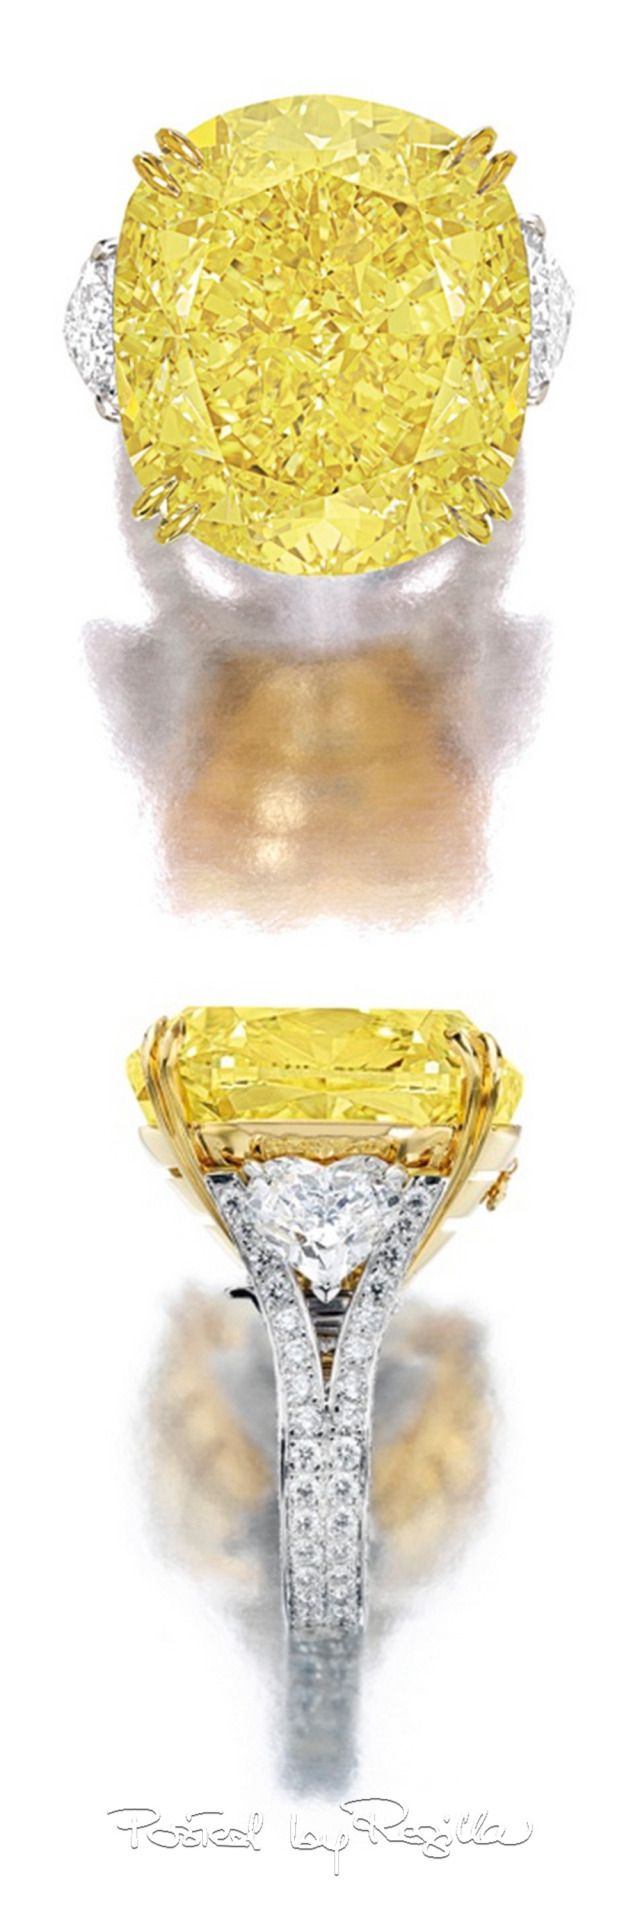 Impressive Fancy Canary + White Diamond Ring. Get more inspirations on: http://www.bocadolobo.com/en/inspiration-and-ideas/